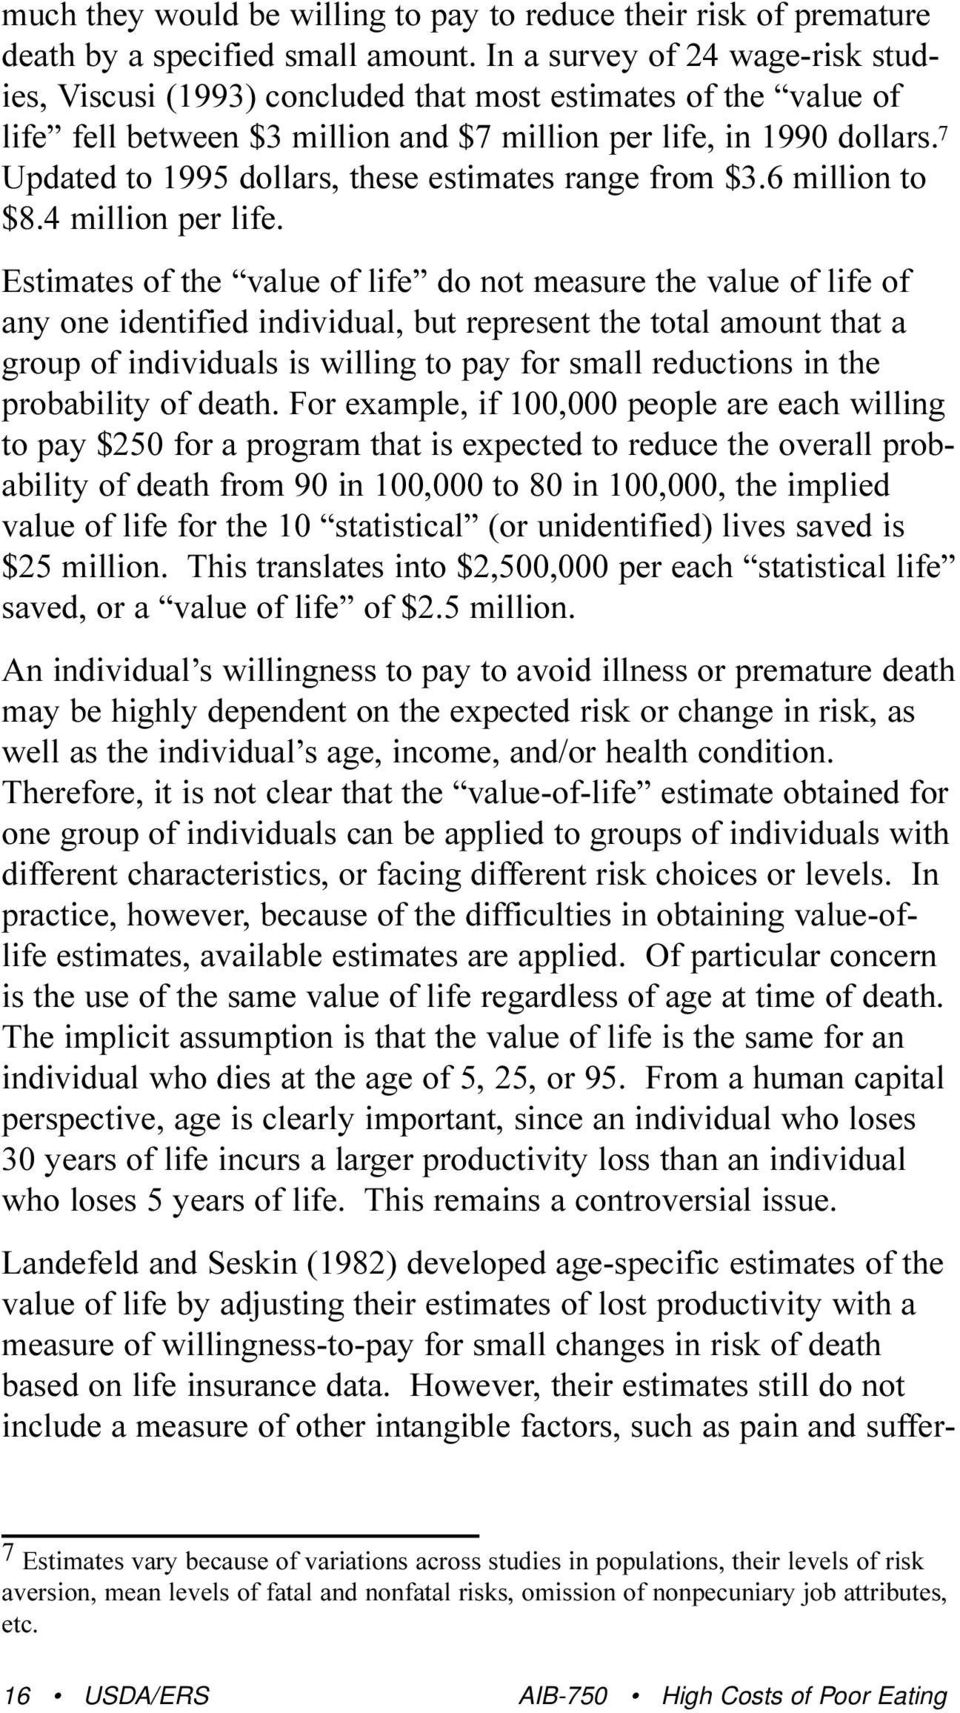 7 Updated to 1995 dollars, these estimates range from $3.6 million to $8.4 million per life.